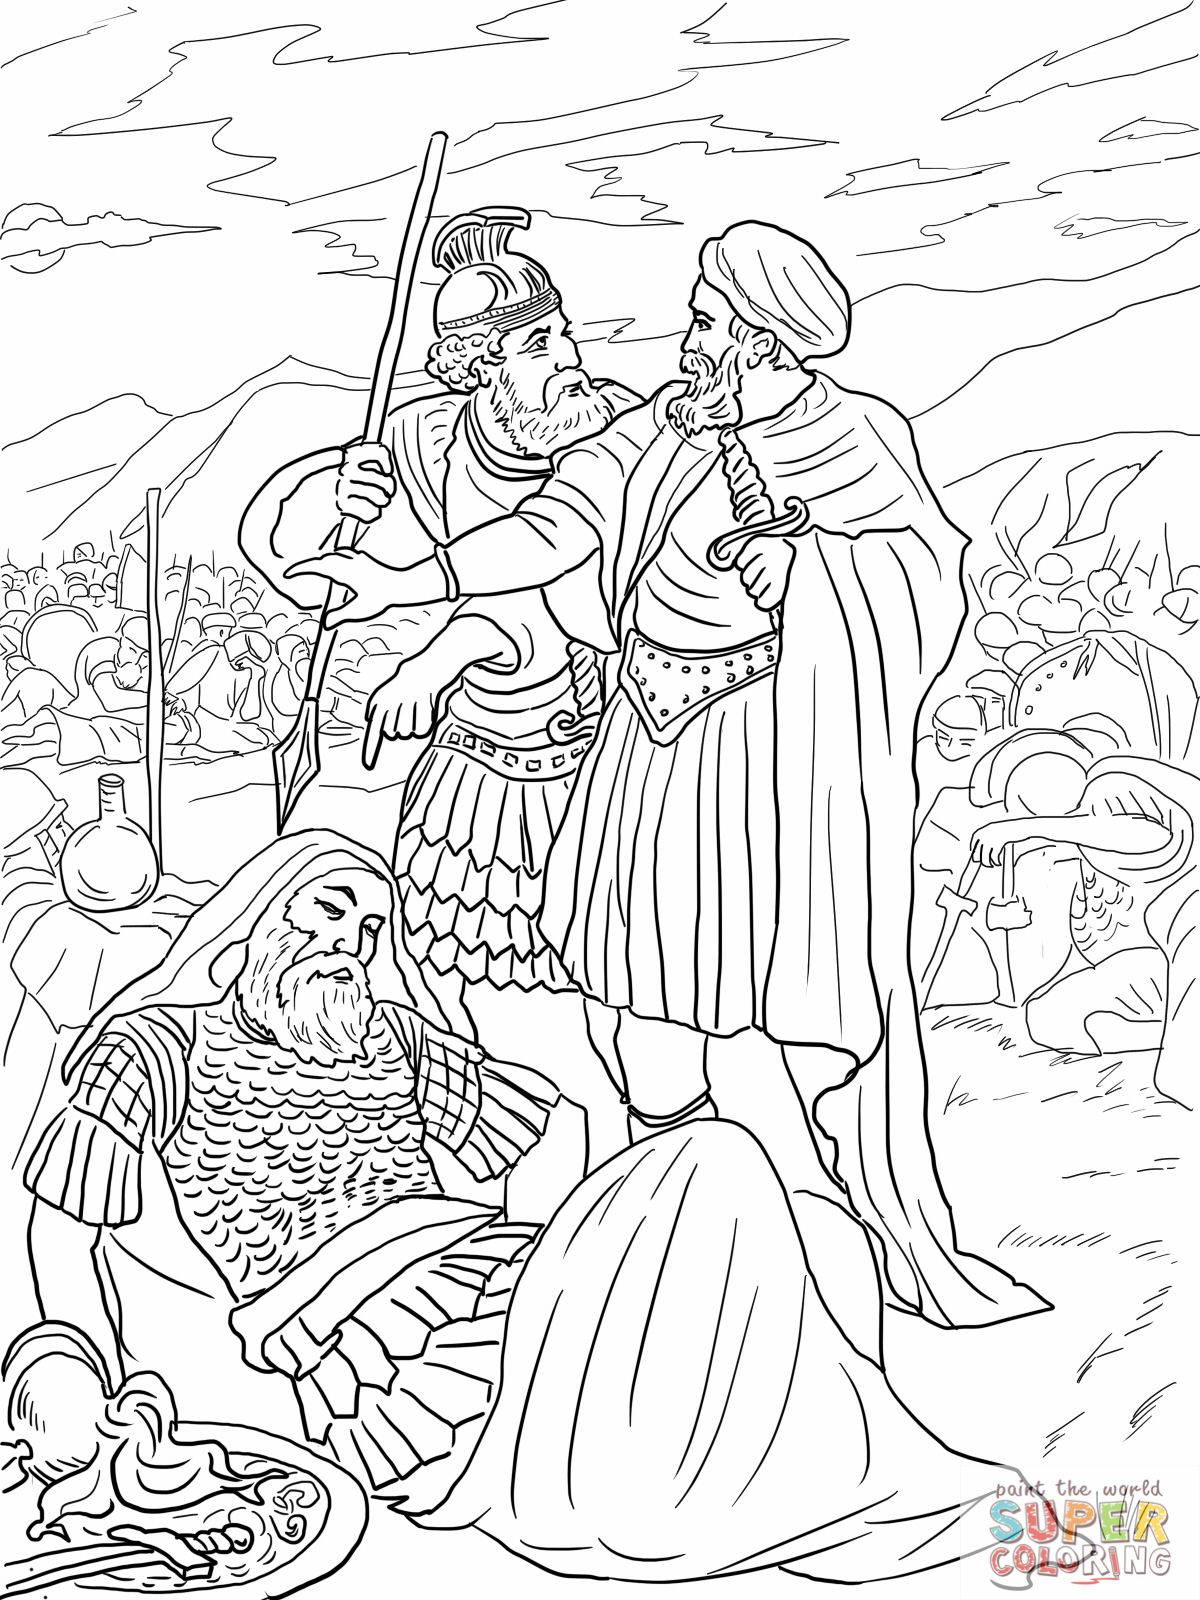 4 David Spares King Saul Coloring Page